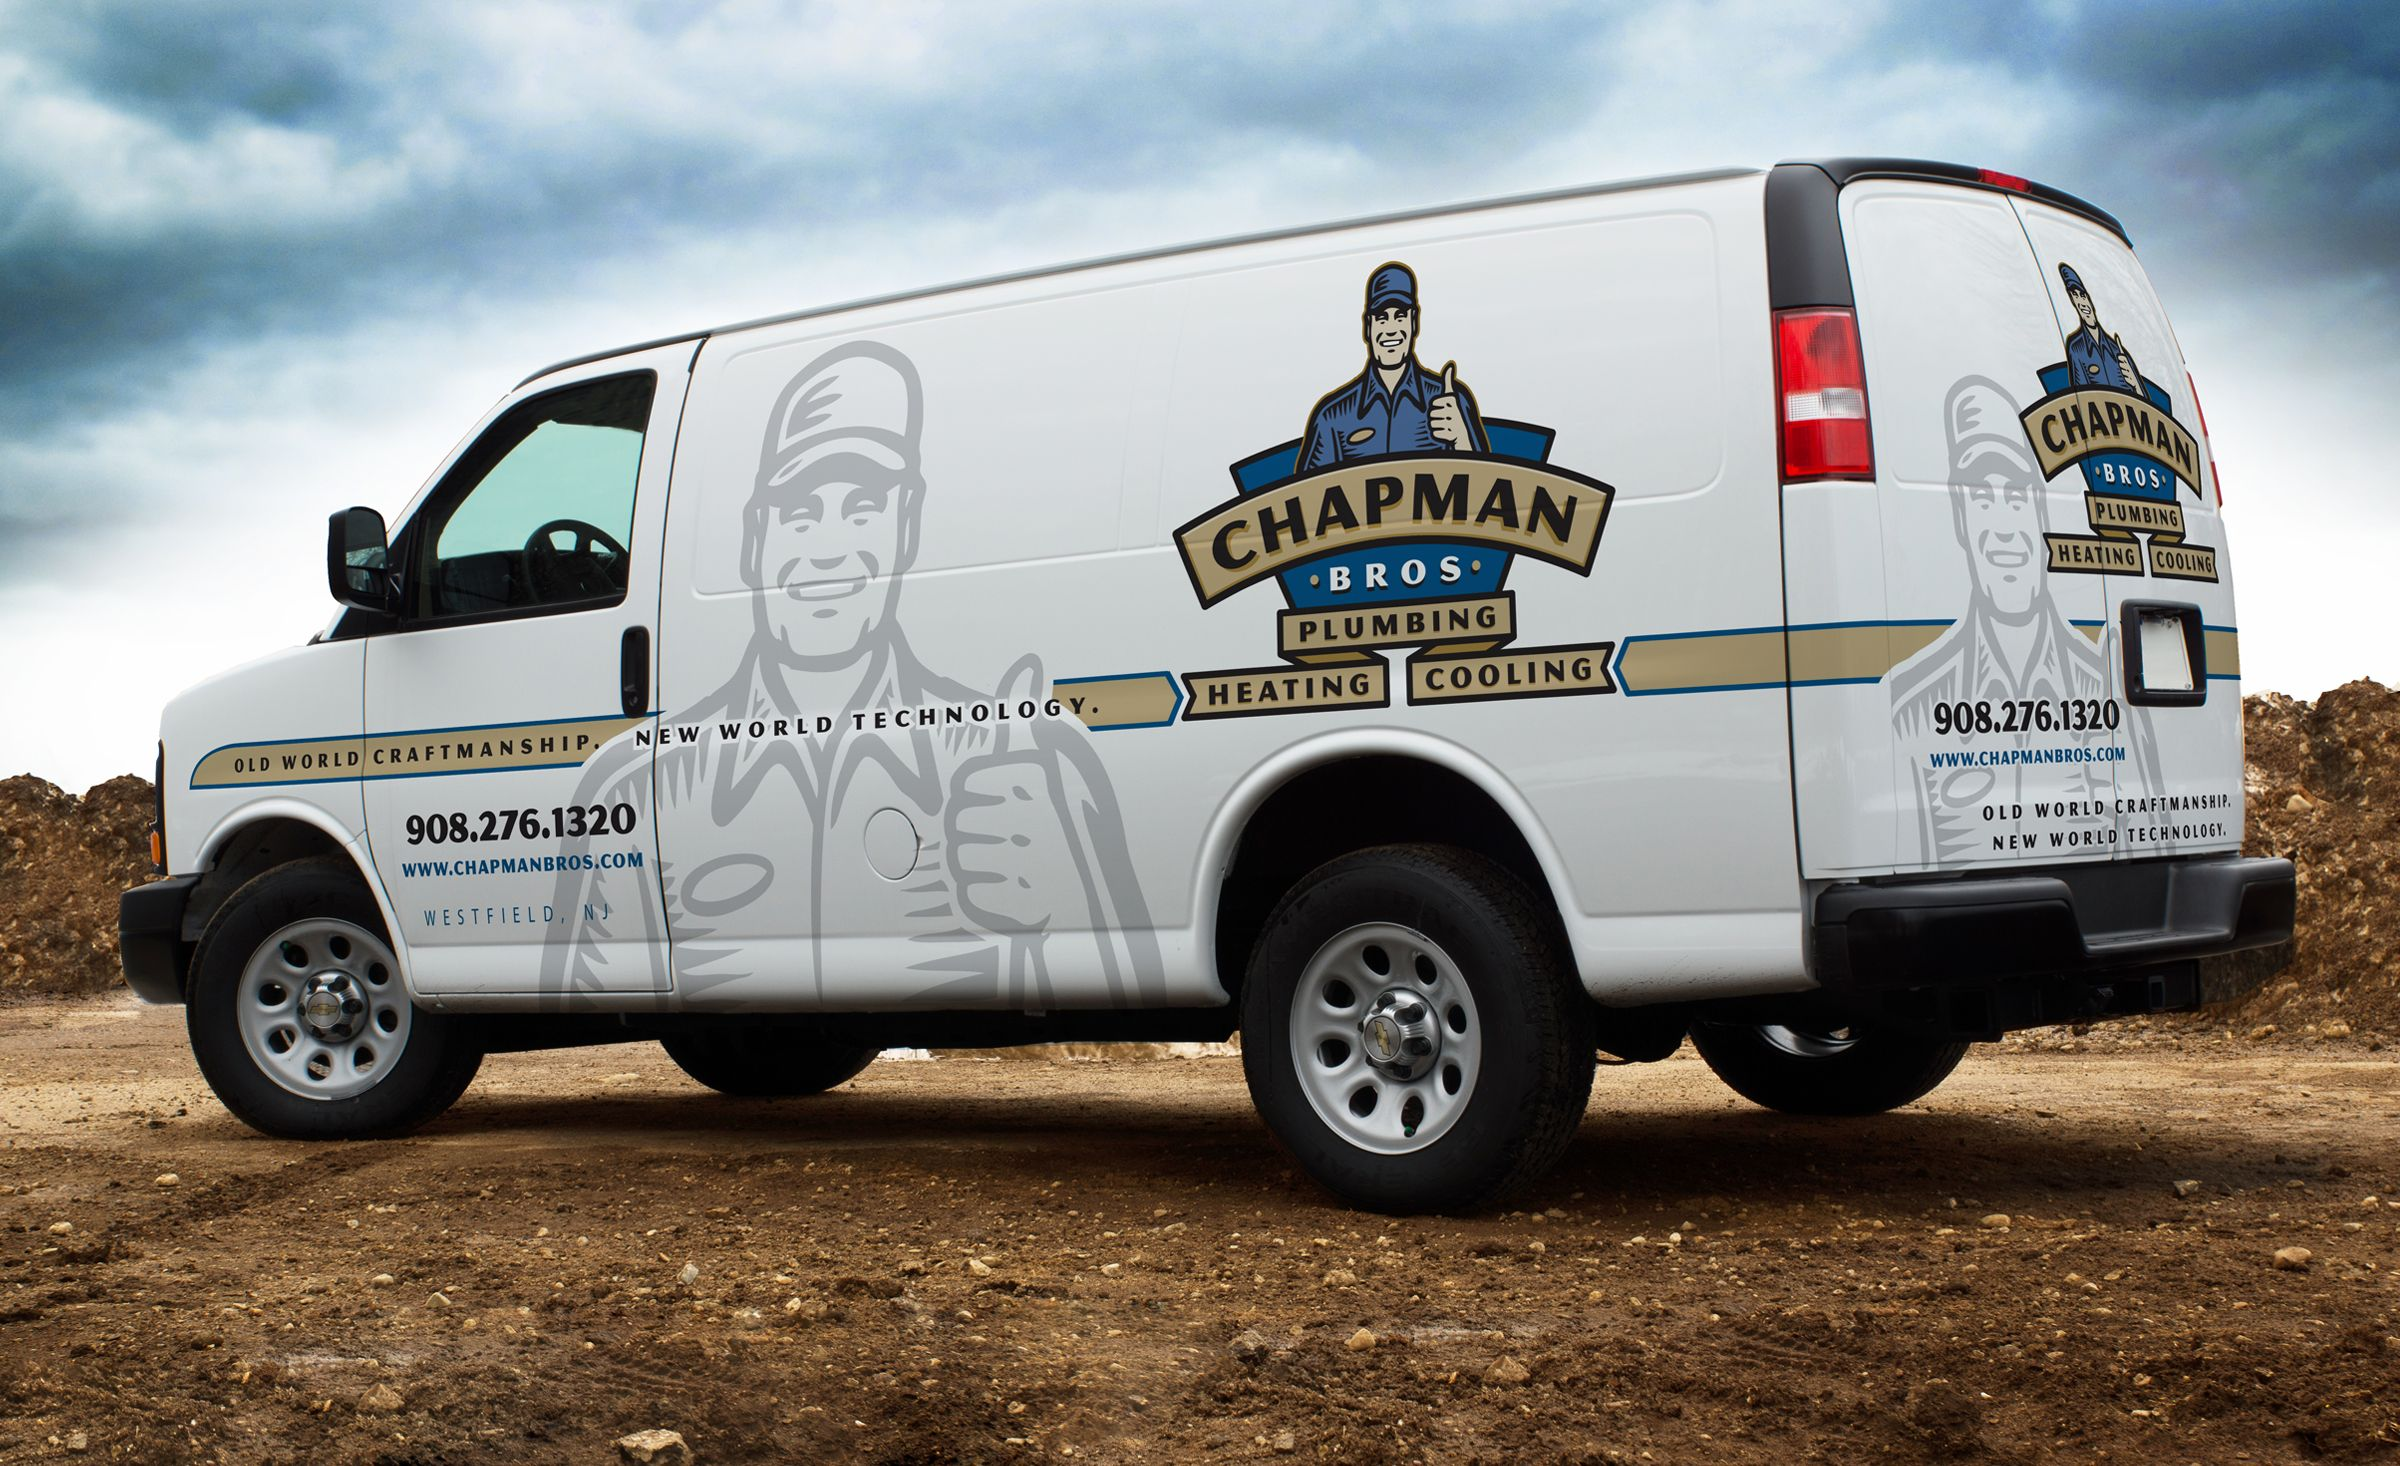 Chapman Bros Graphic D Signs Cool Trucks Vehicle Signage